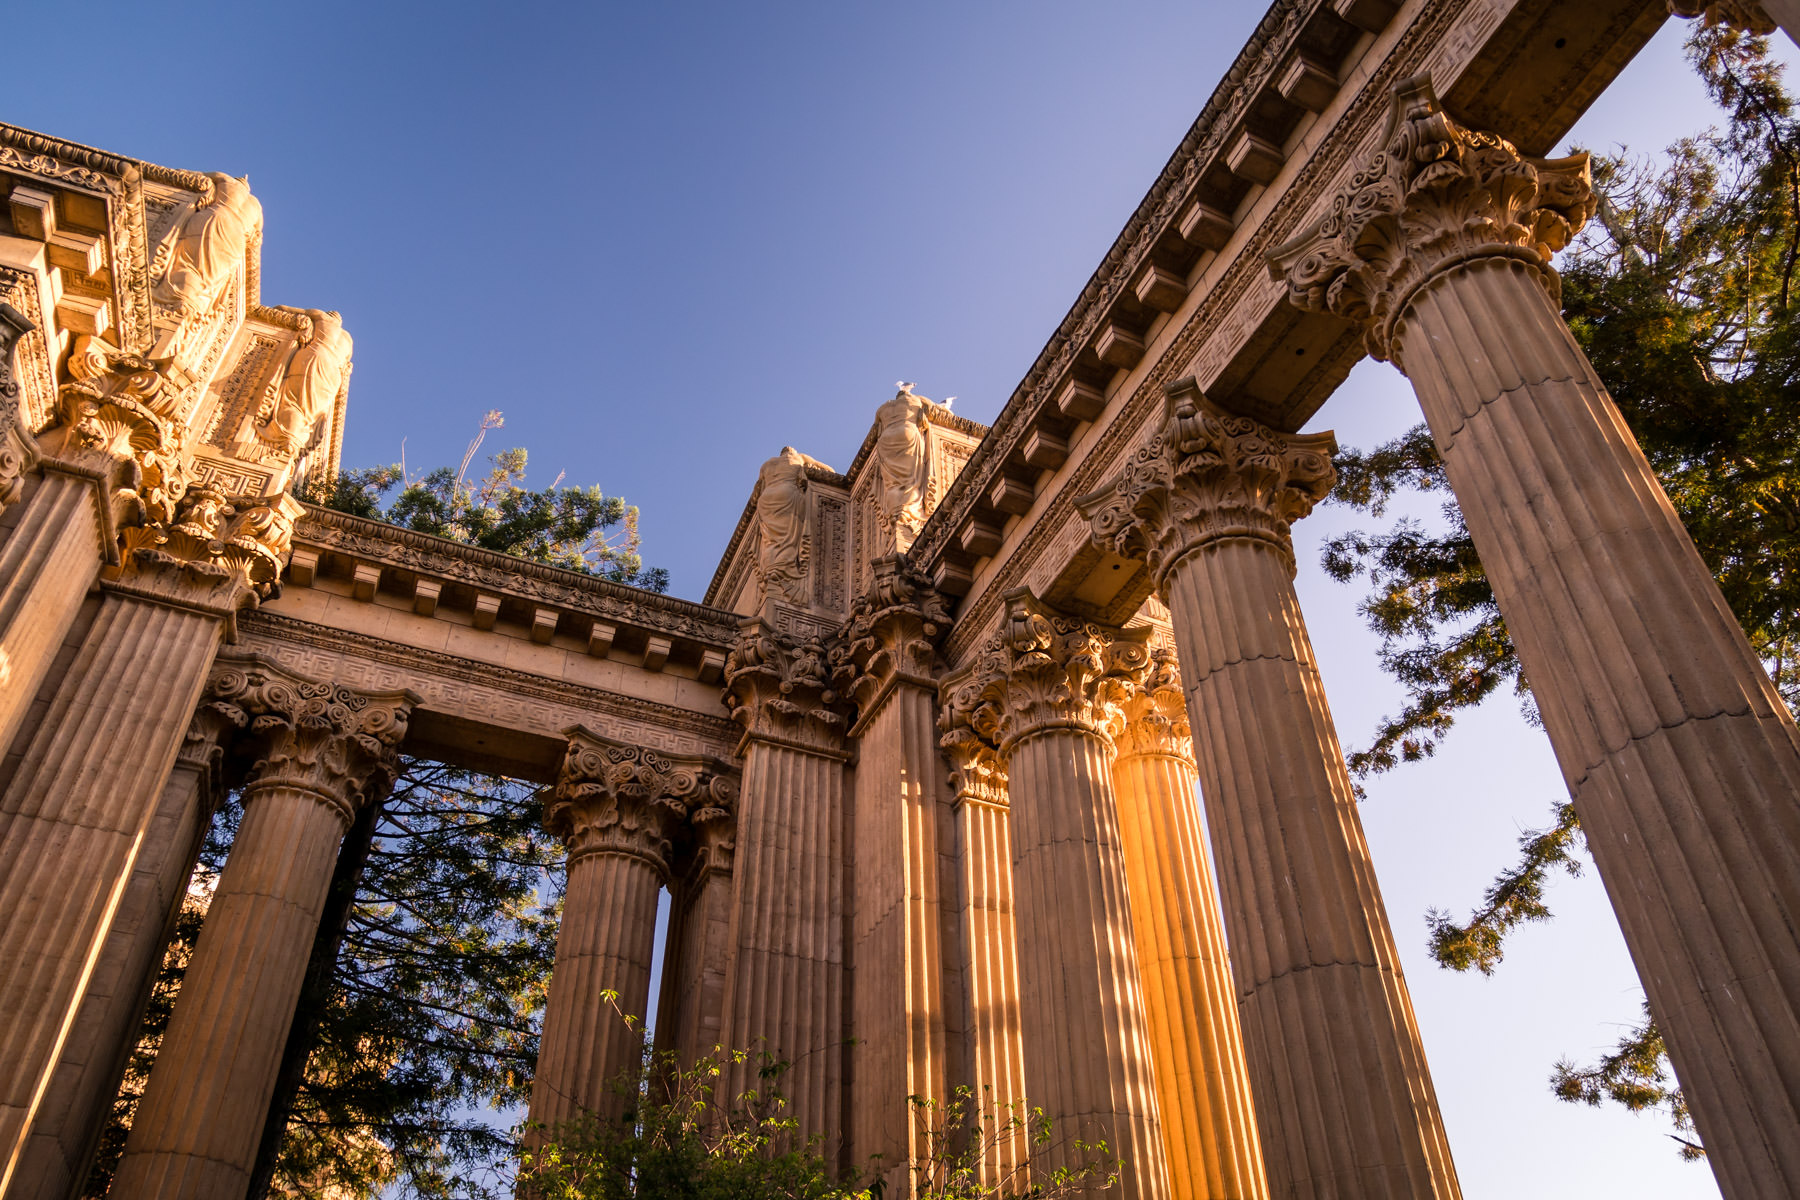 The morning sun illuminates columns at San Francisco's Palace of Fine Arts.